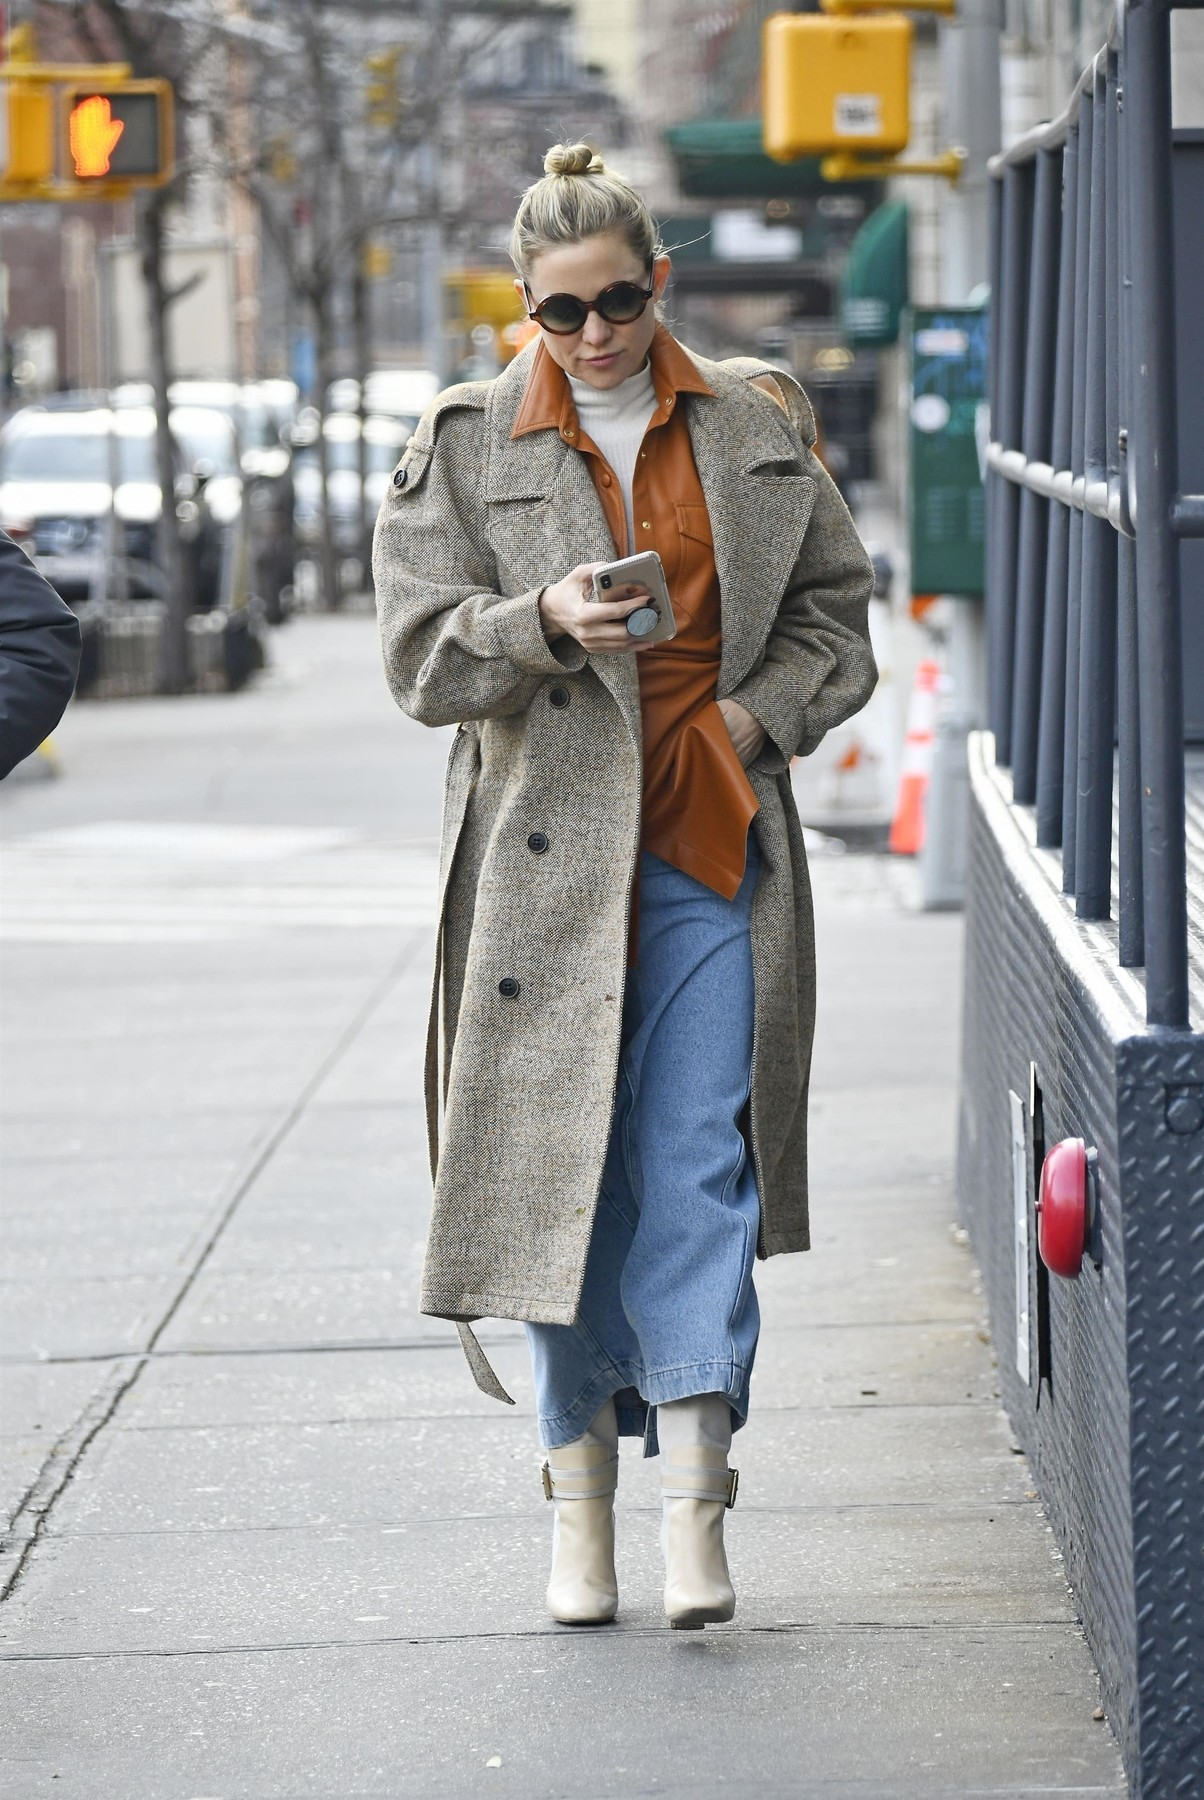 New York, NY  - Fashionable Kate Hudson takes a phone call while bundled up on a walk in NYC. The actress and designer wore a herringbone peacoat over denim skirt, beige boots and and orange rust collared shirt  *UK Clients - Pictures Containing Children Please Pixelate Face Prior To Publication*, Image: 487020215, License: Rights-managed, Restrictions: , Model Release: no, Credit line: BACKGRID / Backgrid USA / Profimedia